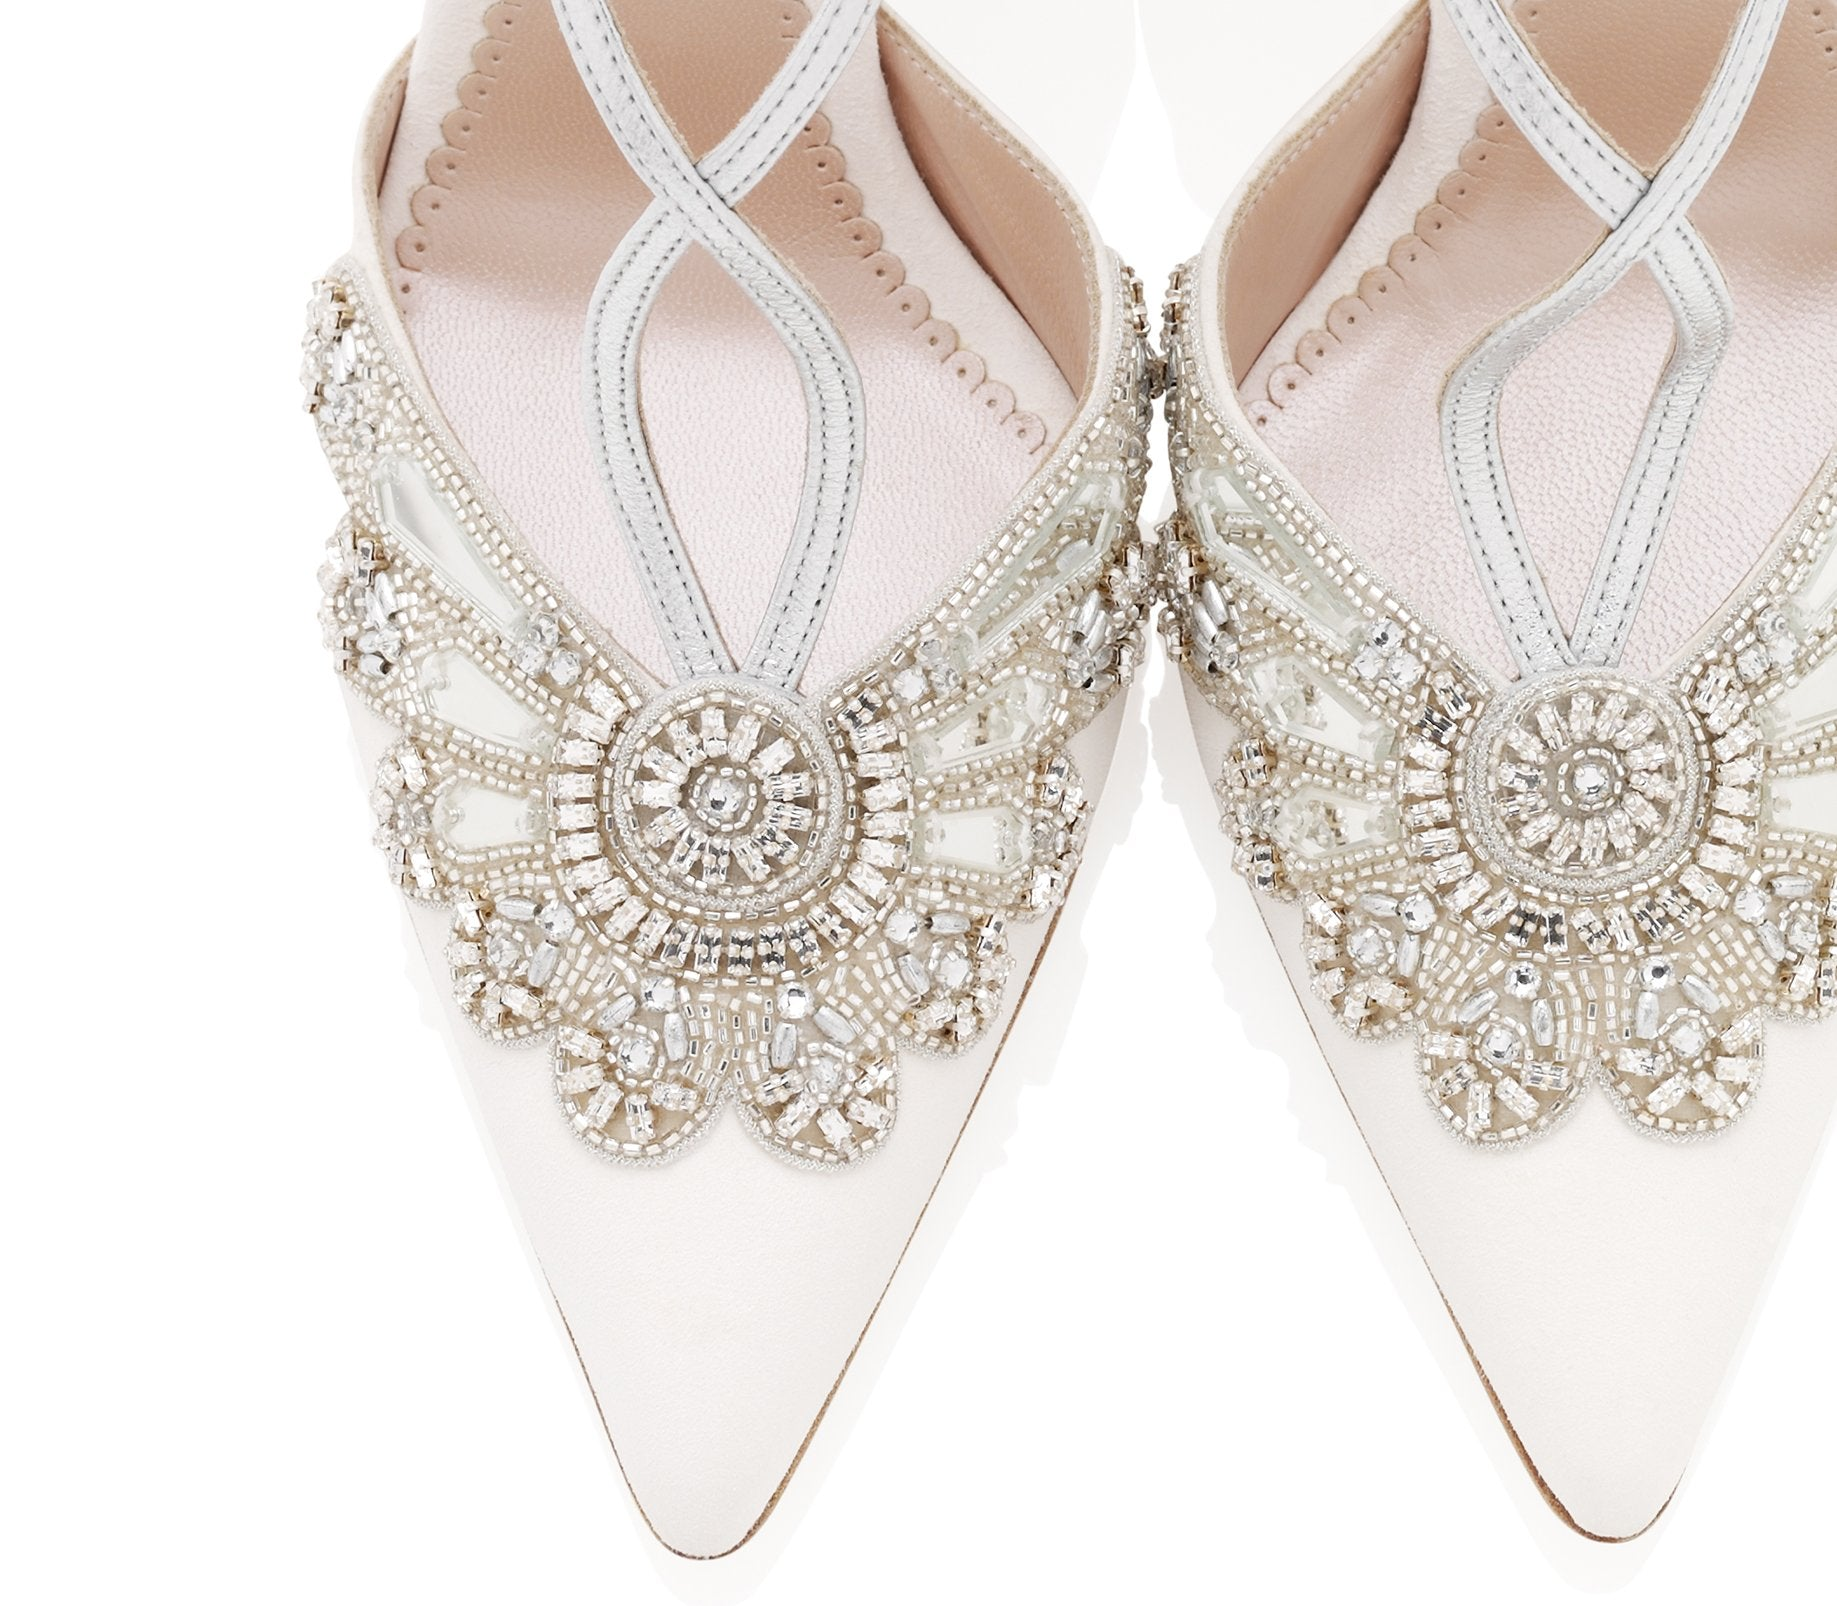 Emmy London Wedding Shoes Crystal Details, Close Up